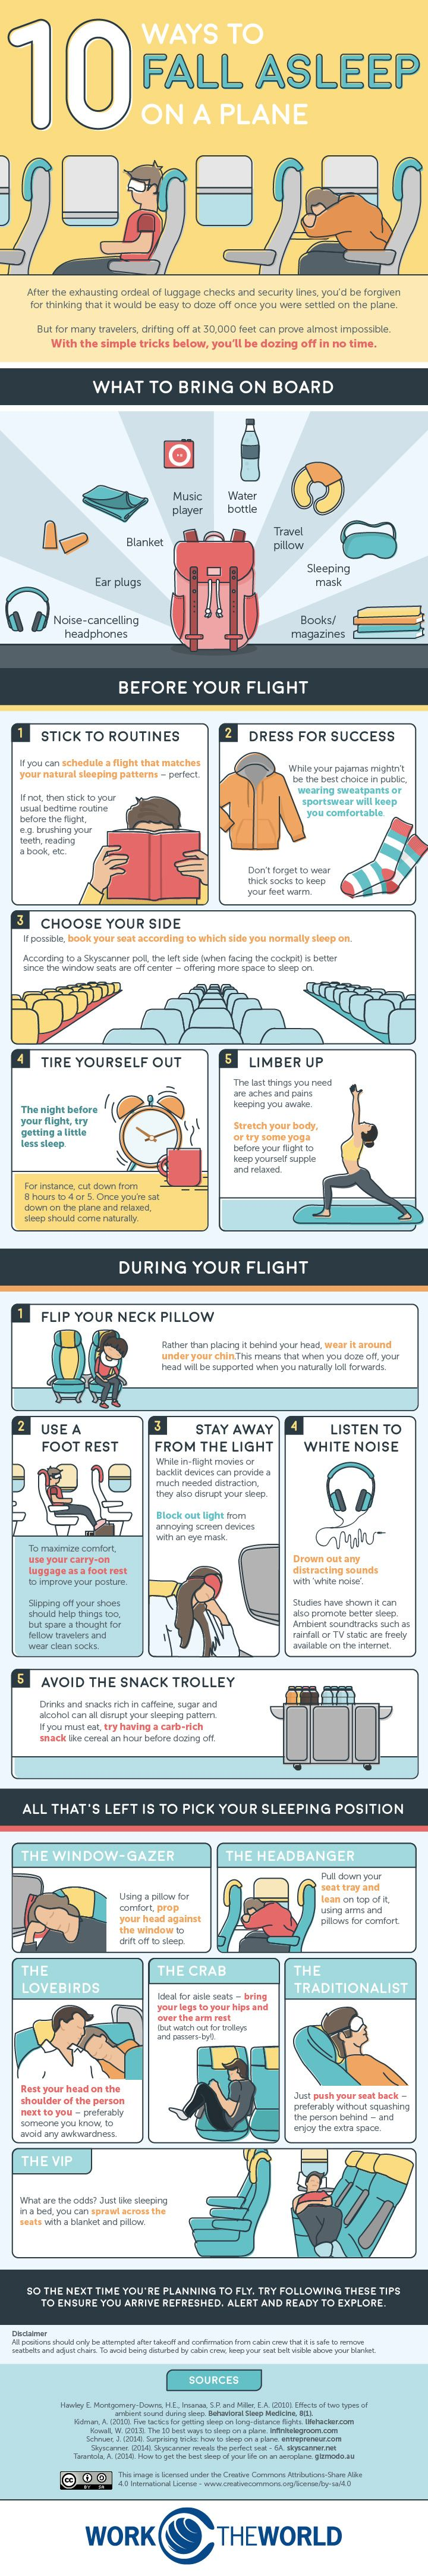 10 Ways To Sleep Soundly (And Safely) On A Plane [Infographic] | Lifehacker Australia